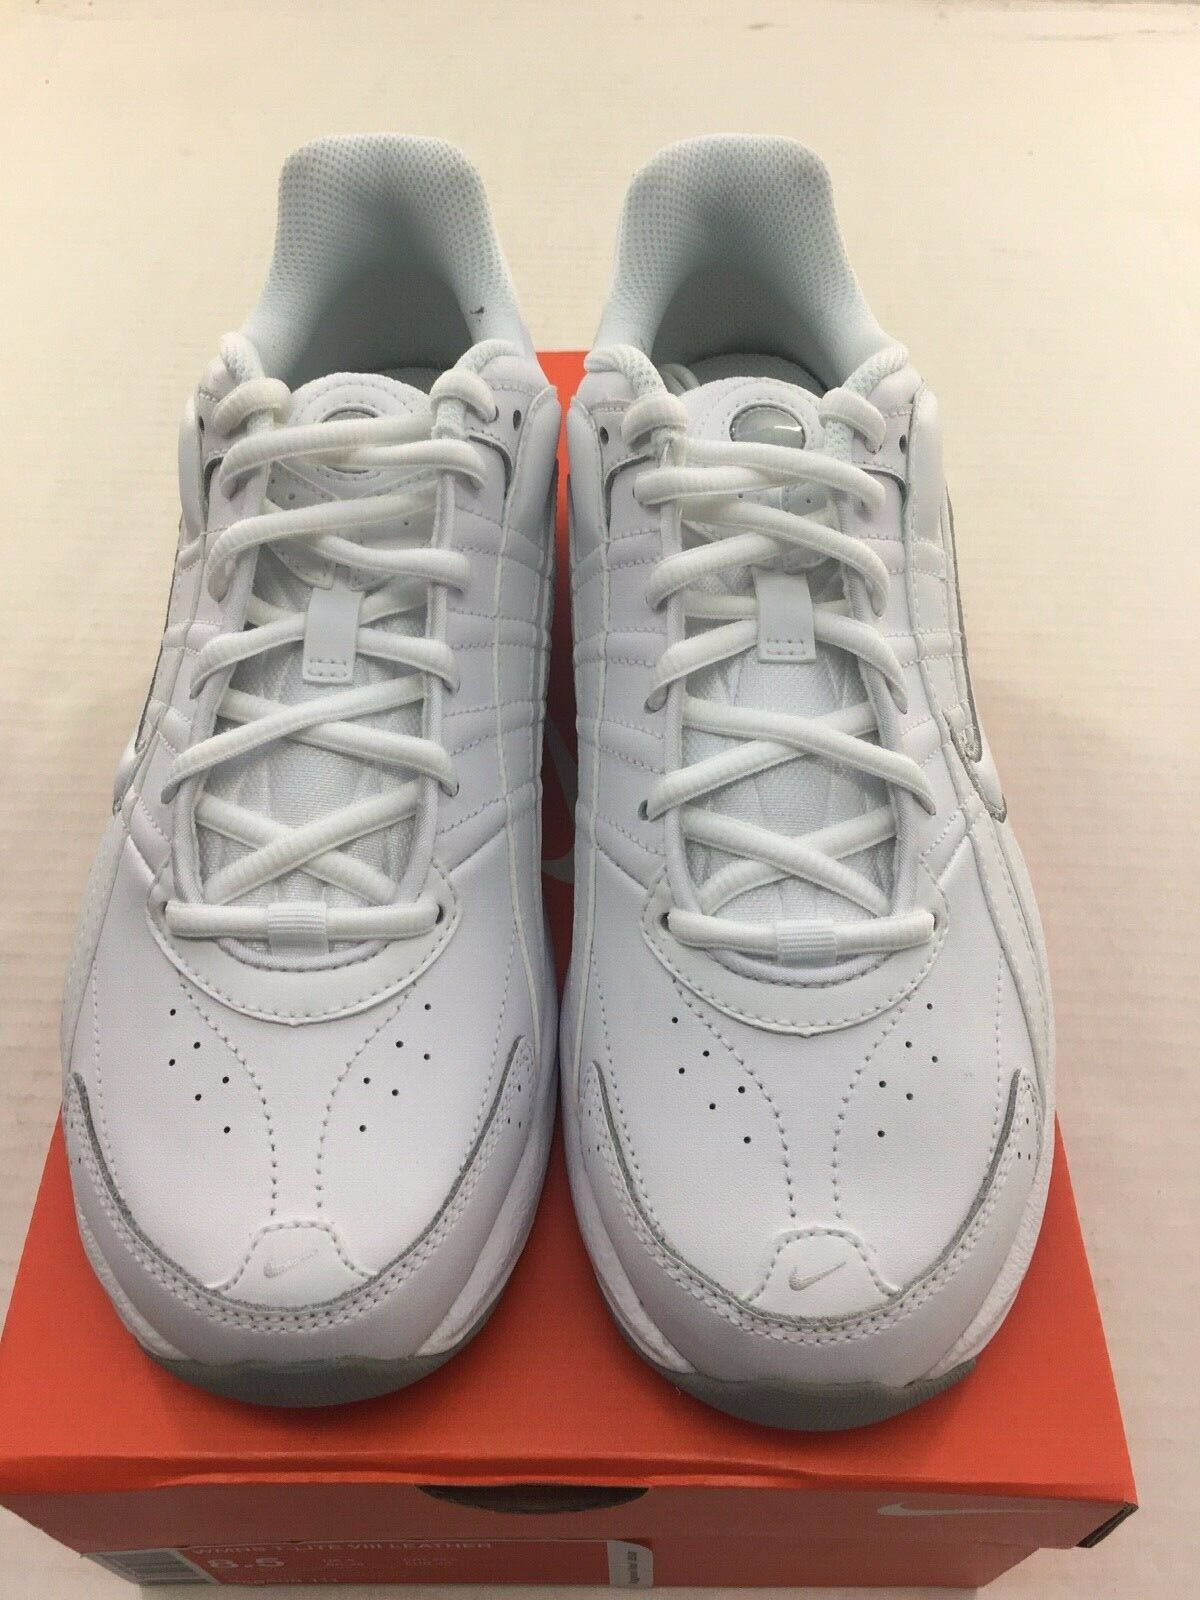 NEW Nike T-Lite VIII Women's White Leather Athletic 386508 111 Size 8.5 and 12 1